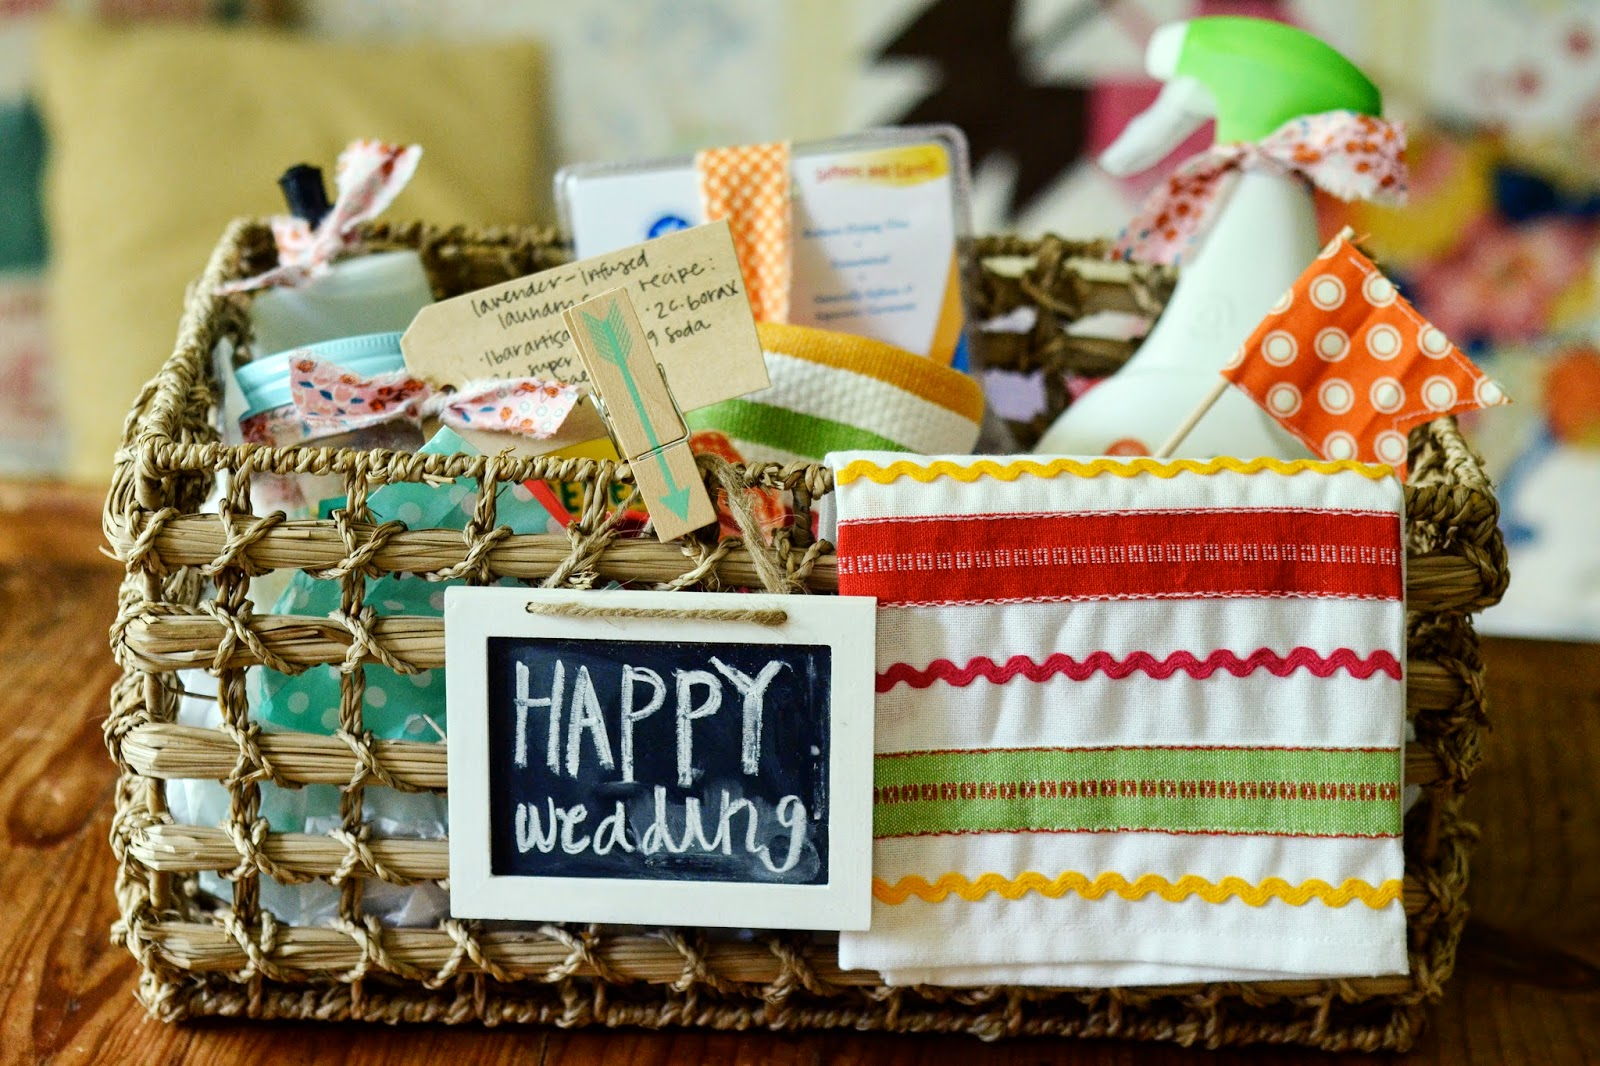 Wedding Gift Ideas Under USD25 : ... creates: the homemakers wedding gift basket idea for under USD25